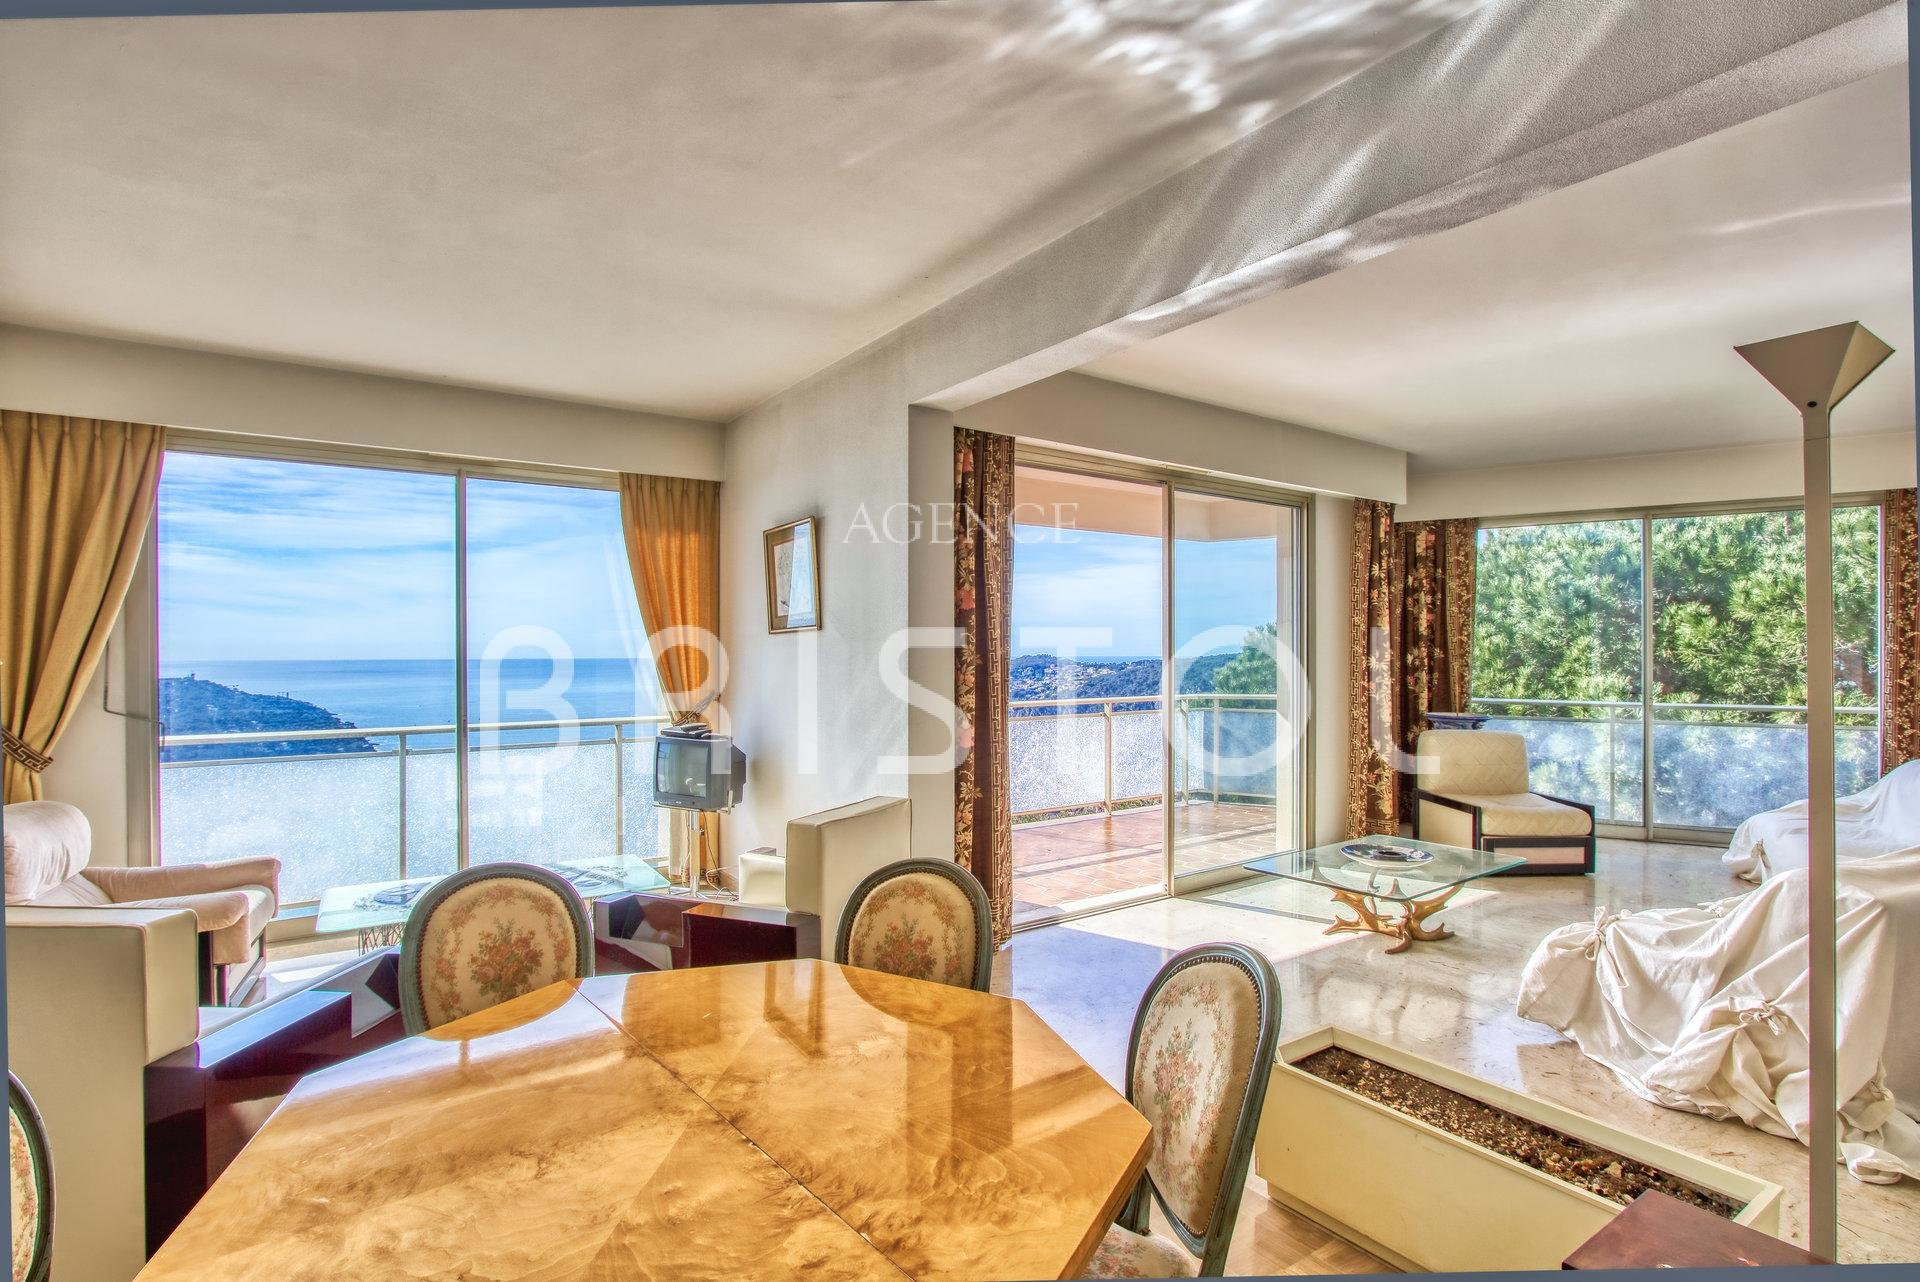 Apartment with amazing sea view on the Cap Ferrat and the Bay of Villefranche